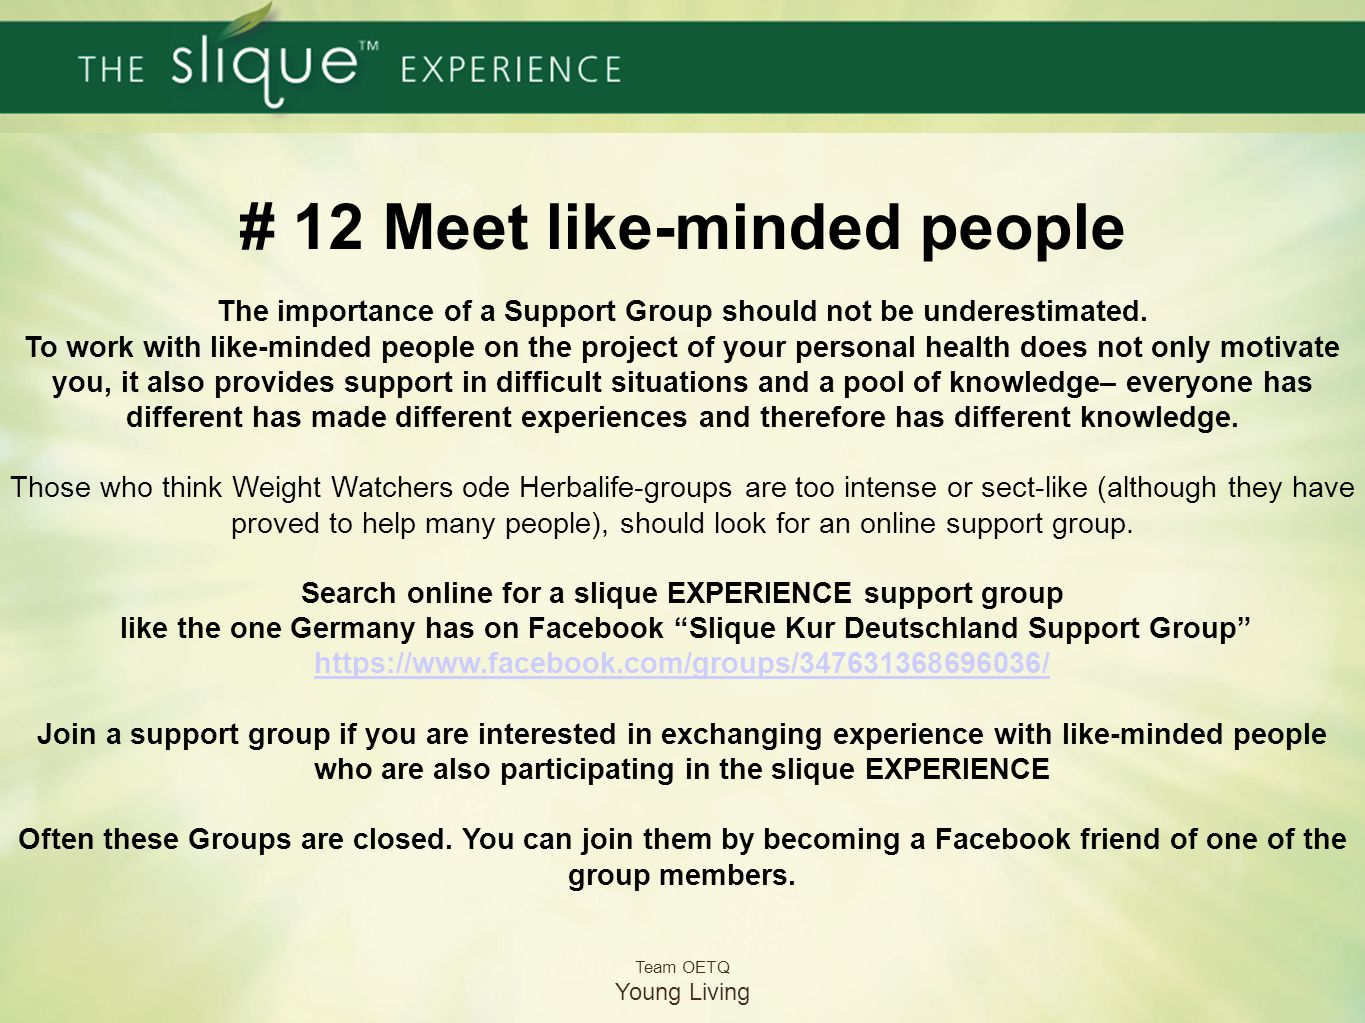 # 12 Meet like-minded people